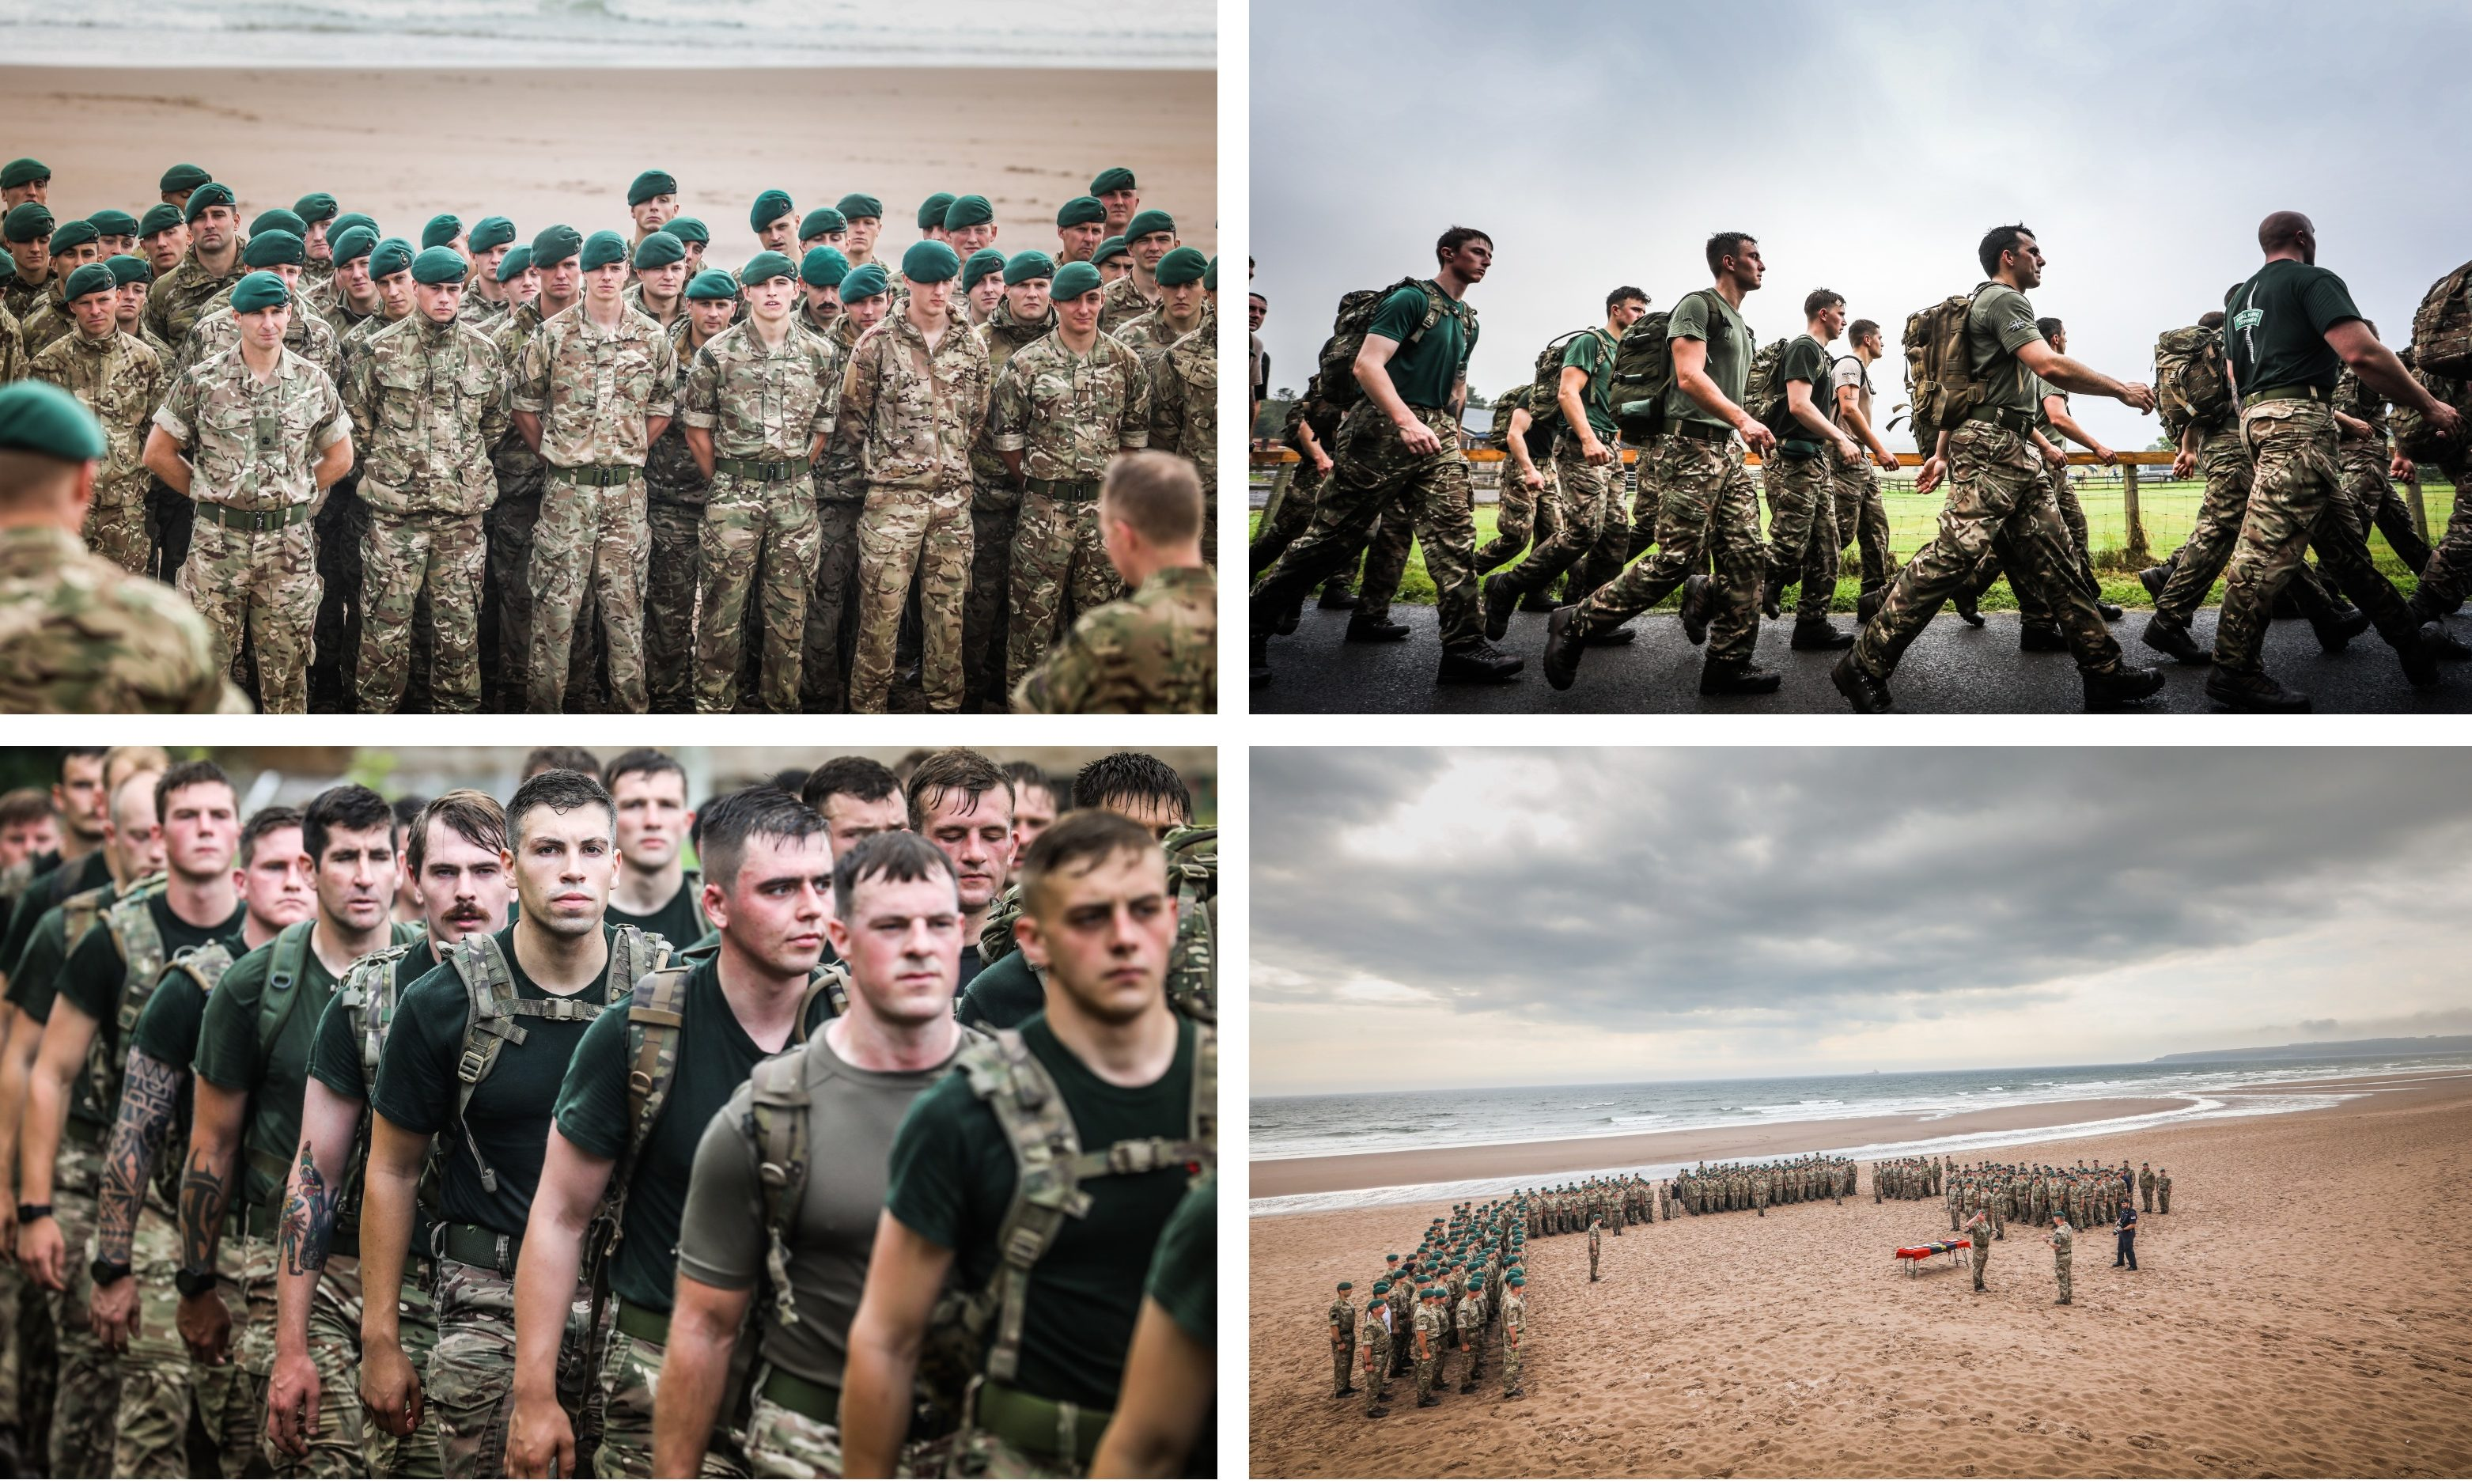 The 45 Commando group at RM Condor marked the changing of the guard. Pictures: Mhairi Edwards.